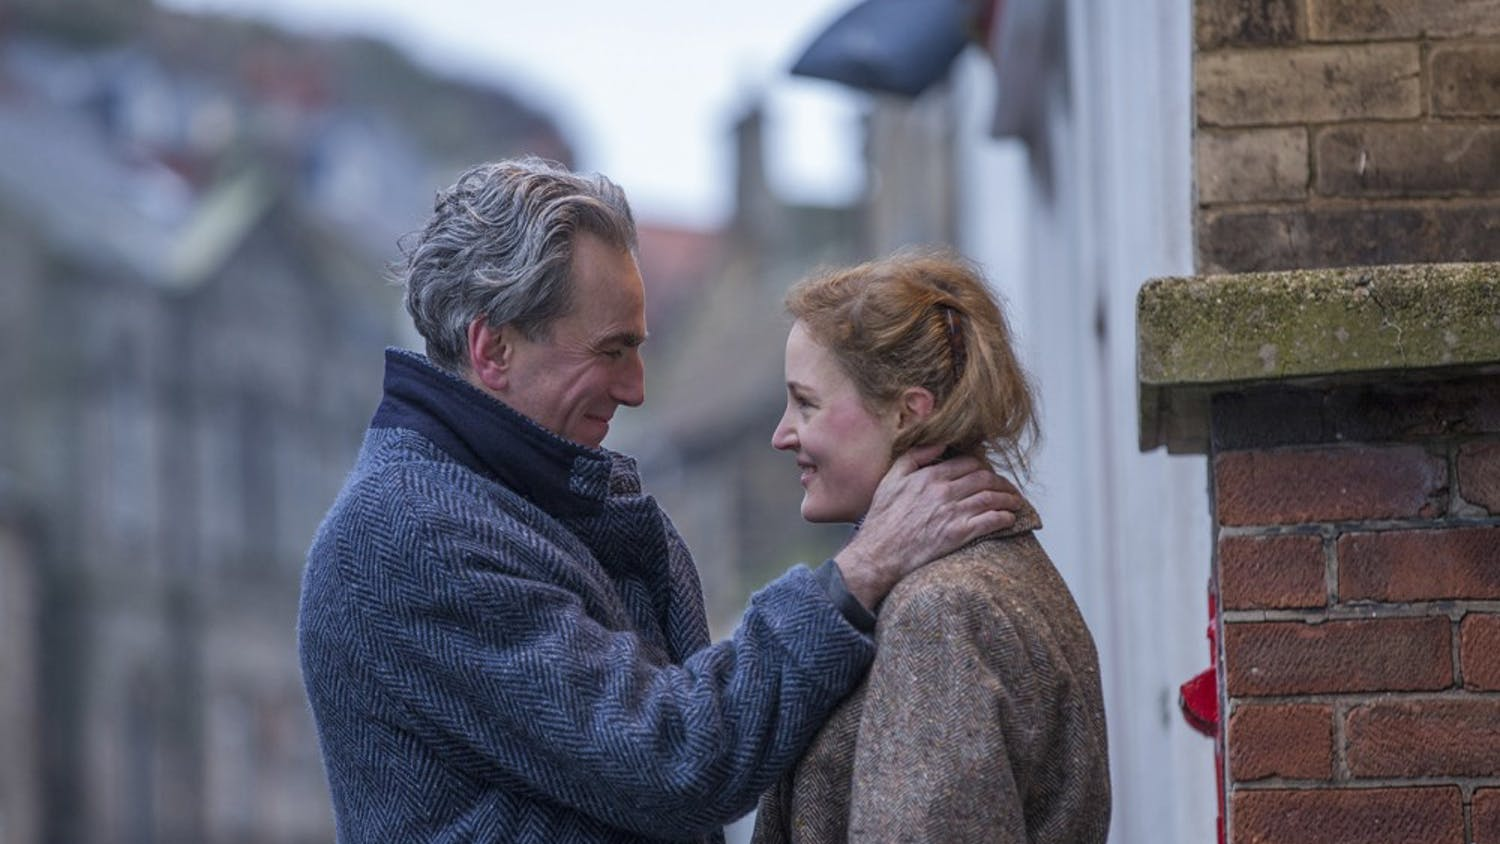 """Daniel Day-Lewis stars as Reynolds Woodcock and Vicky Krieps stars as Alma in the film, """"Phantom Thread."""" (Laurie Sparham/Focus Features)"""